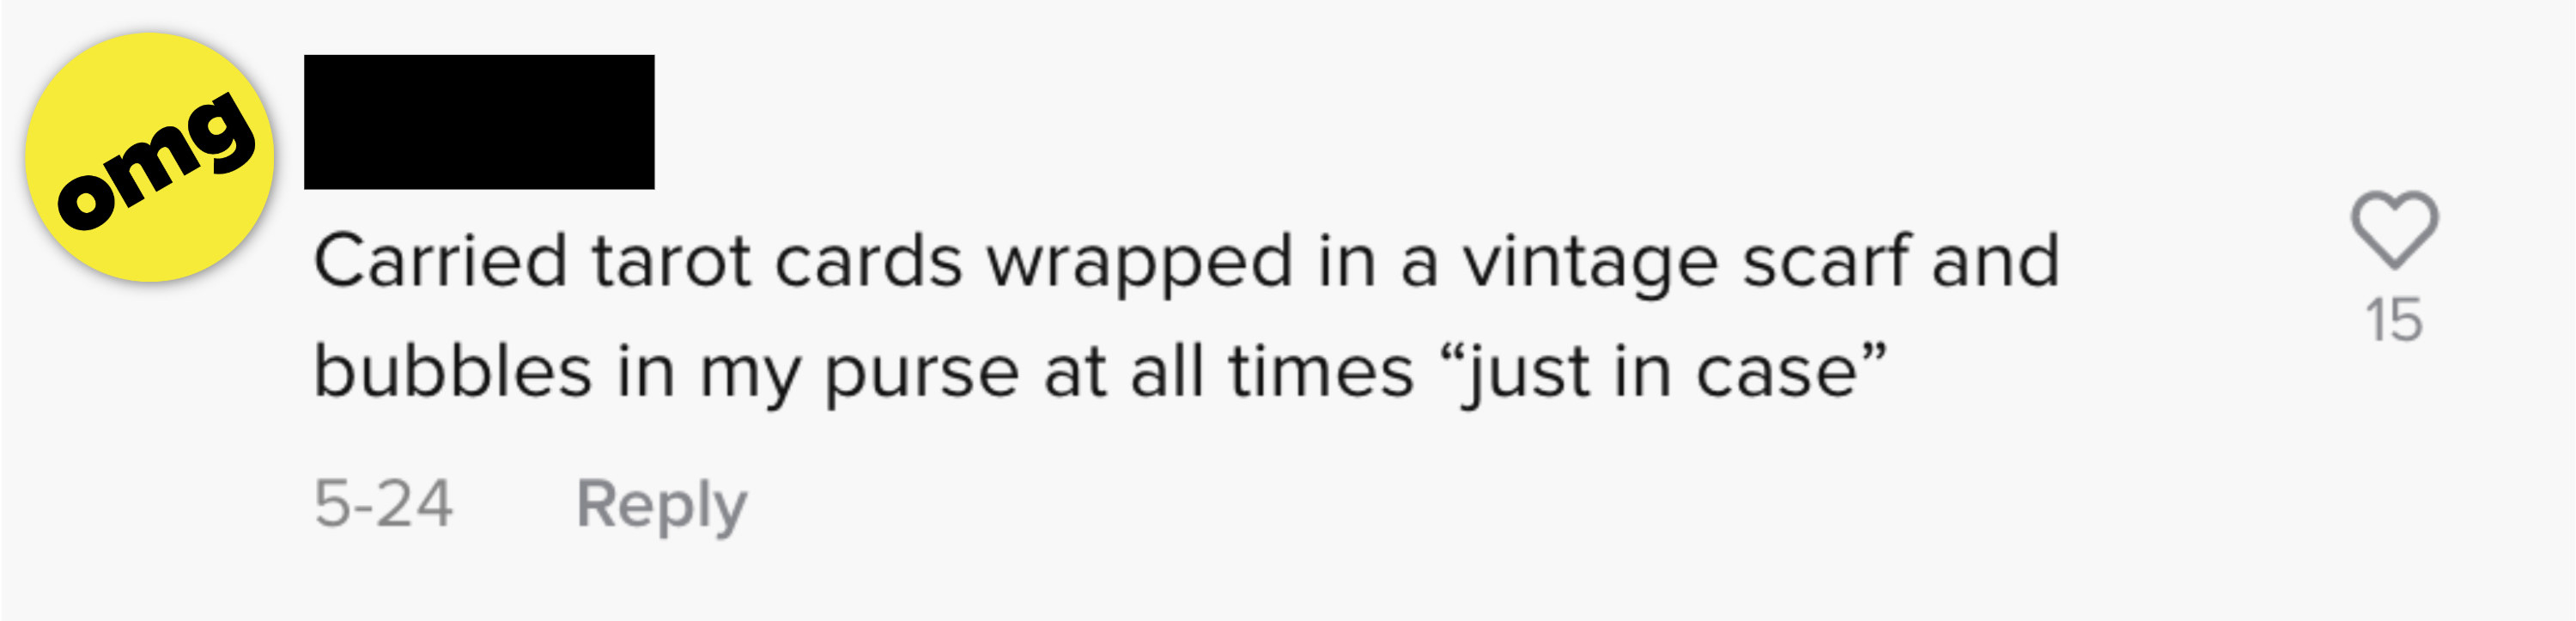 """Carried tarot cards wrapped in vintage a vintage scarf and bubbles in my purse """"just in case"""""""